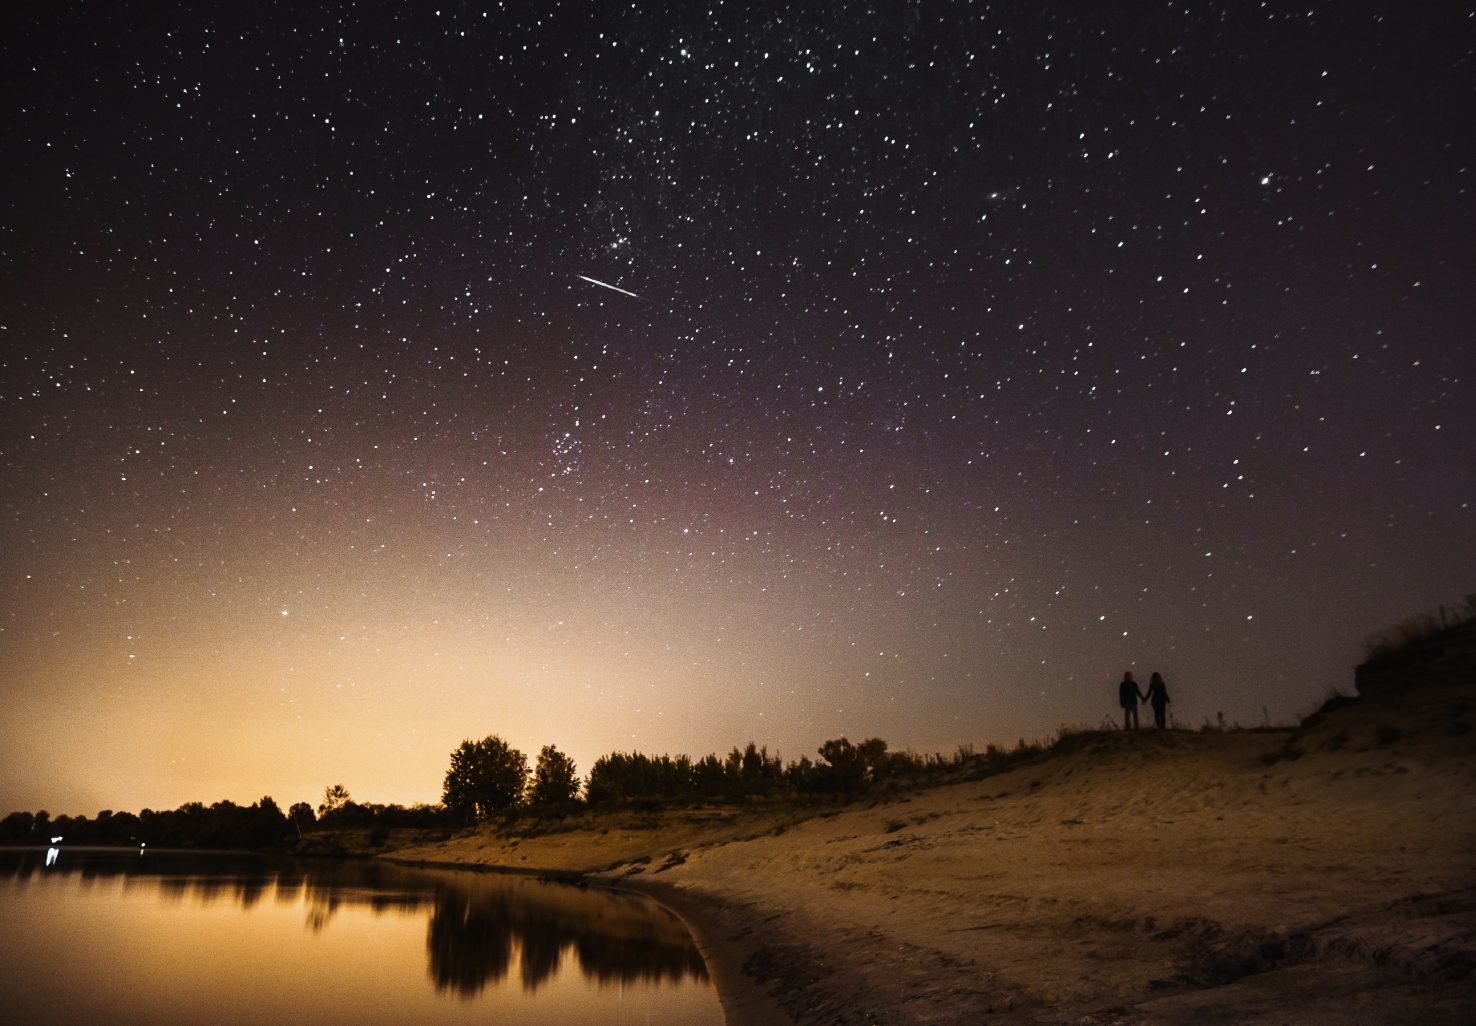 Couple under the stars in Gold Country, California